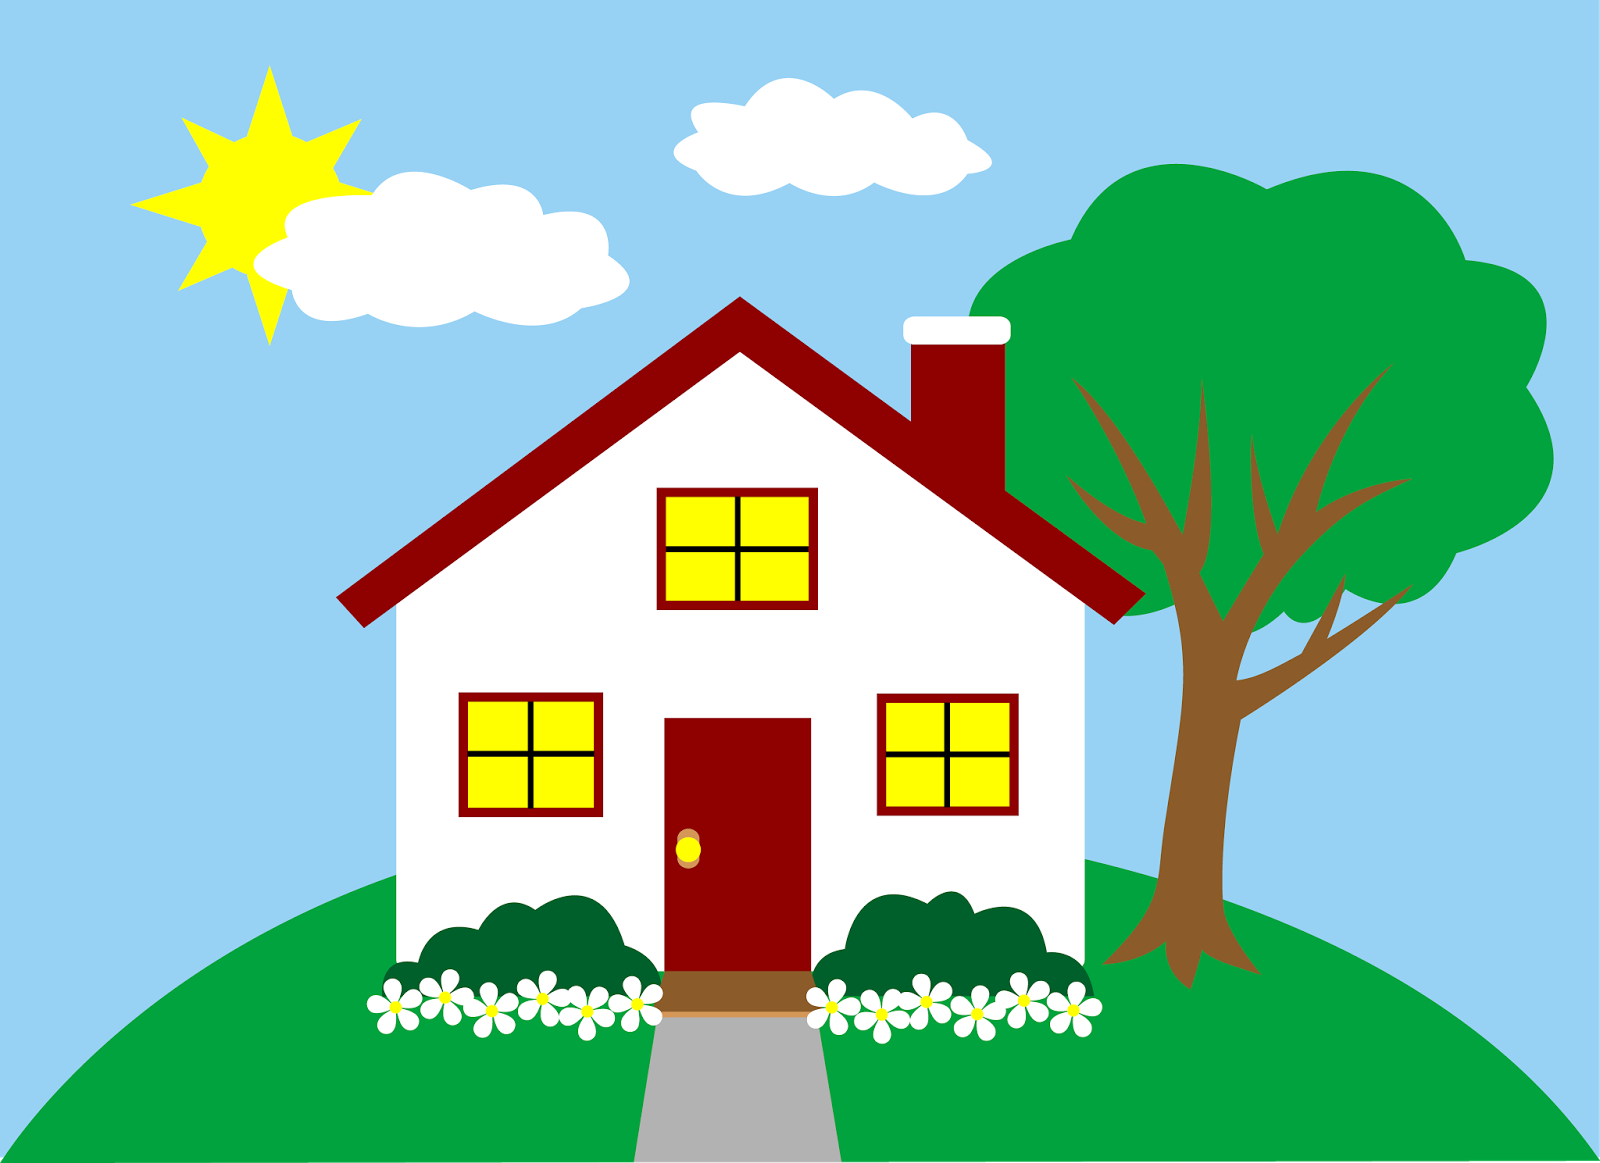 Setting clipart new home Clipart art images sold clip